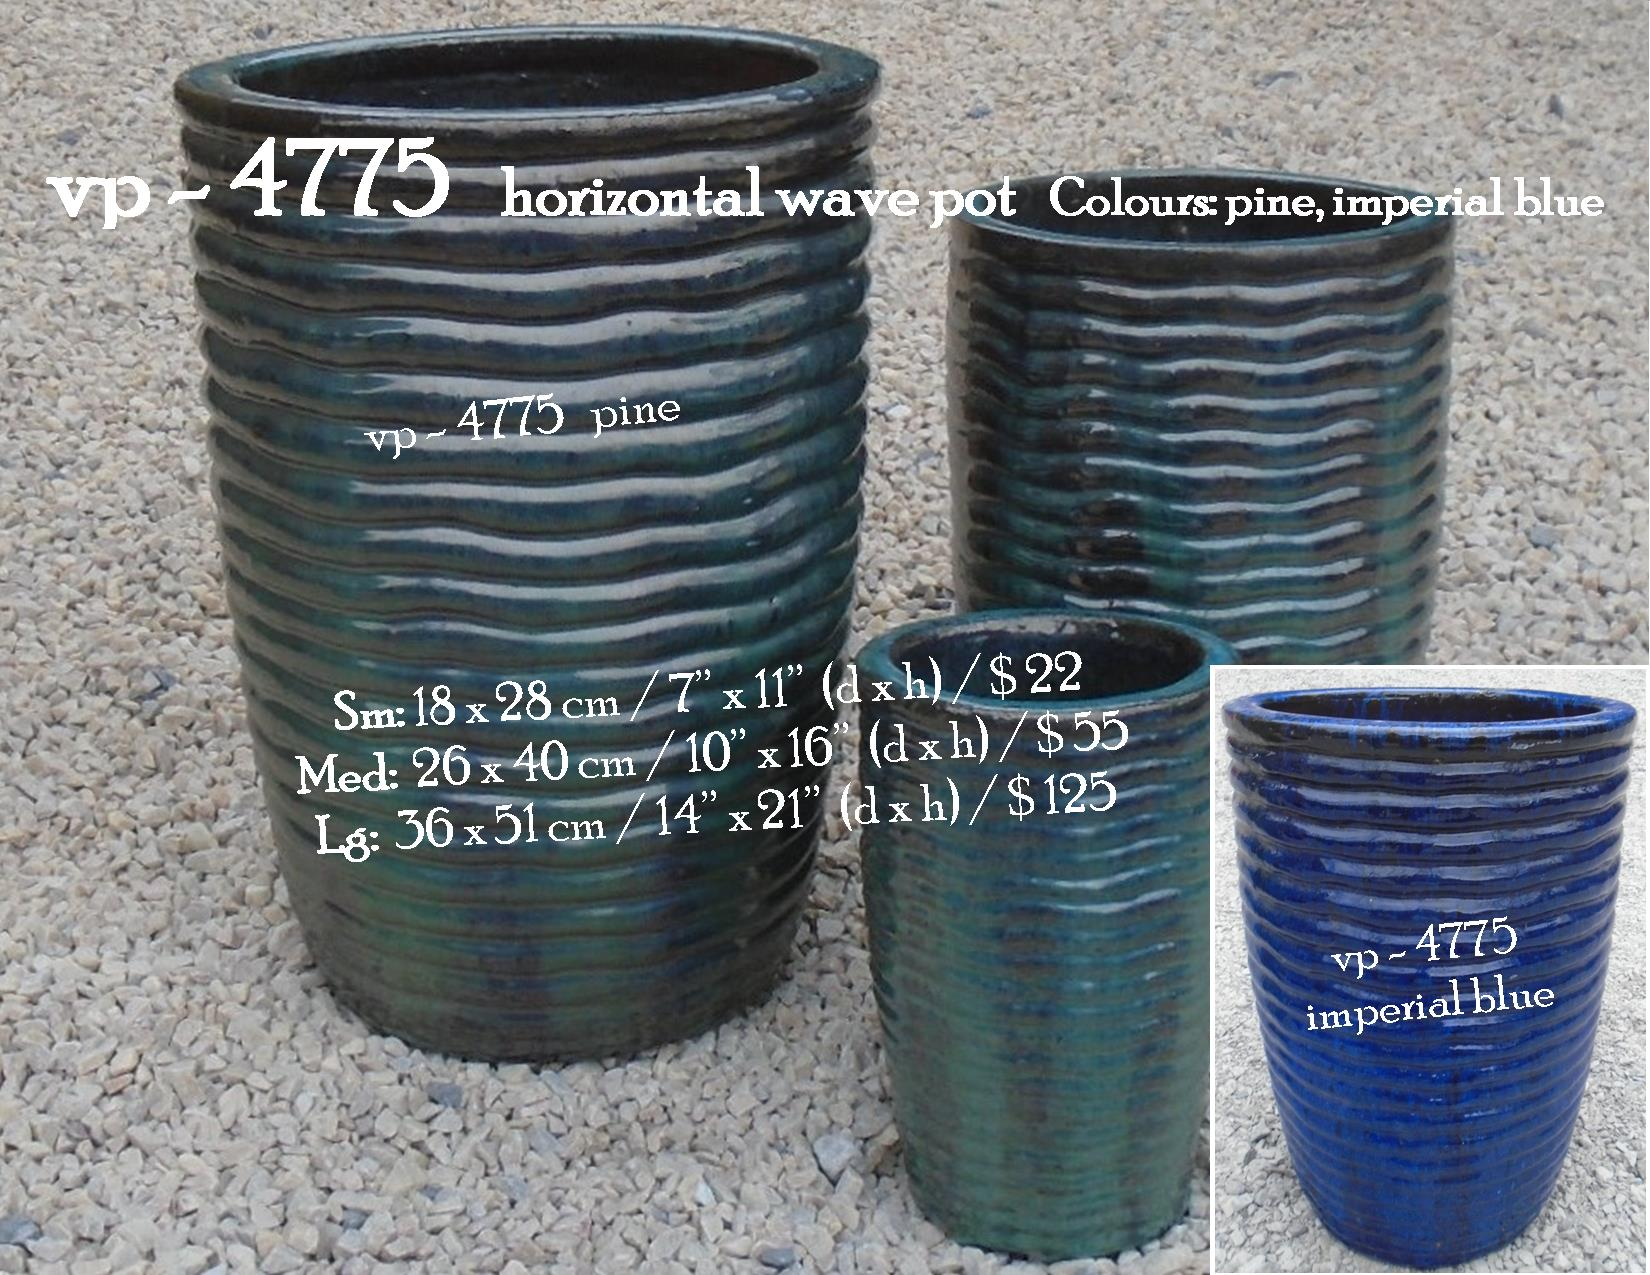 vp - 4775   horizontal wave pot